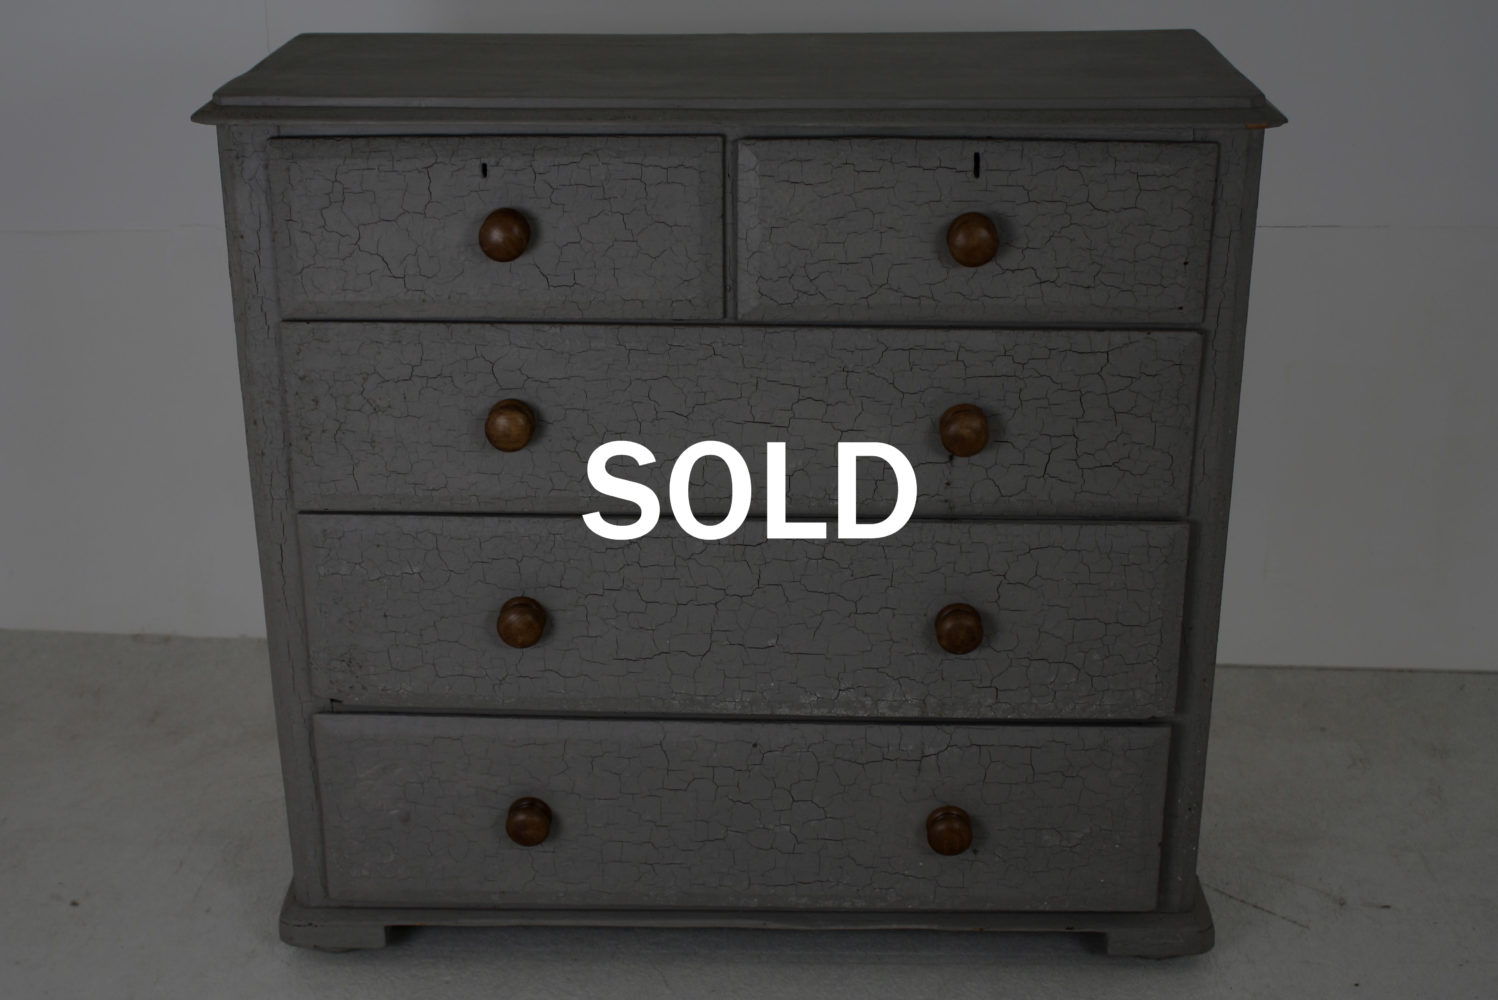 Antique Chest Of Drawers - SOLD